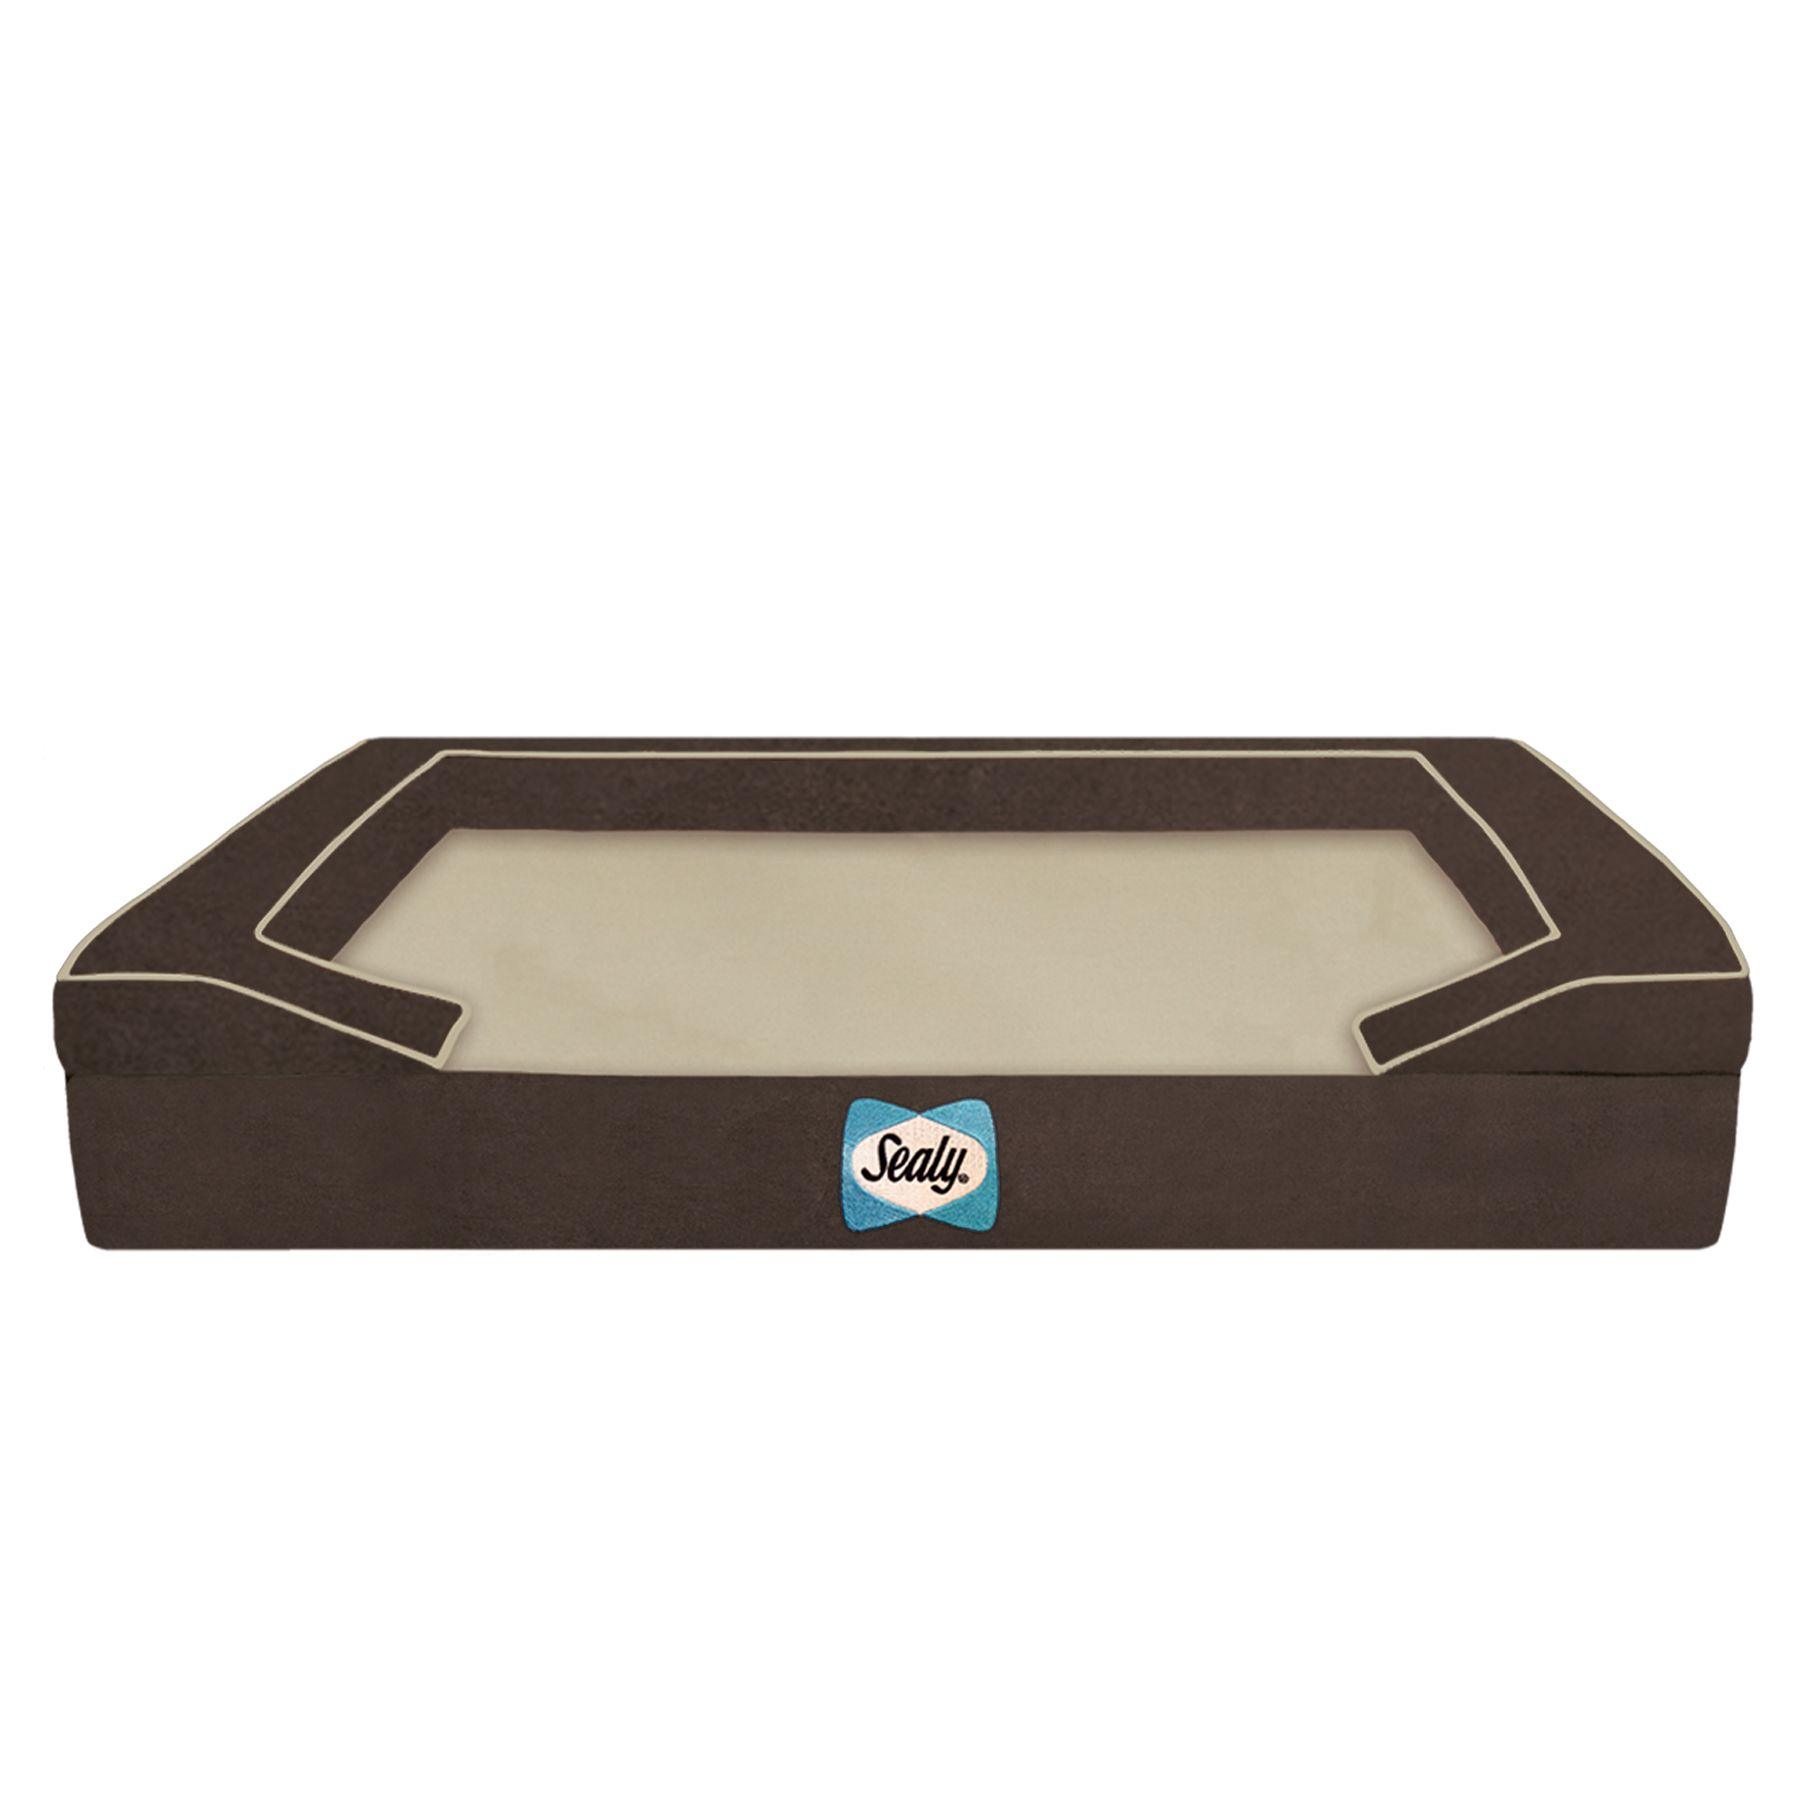 Sealy Premium Bolster Dog Bed Size 42l X 32w X 8h Autumn Brown